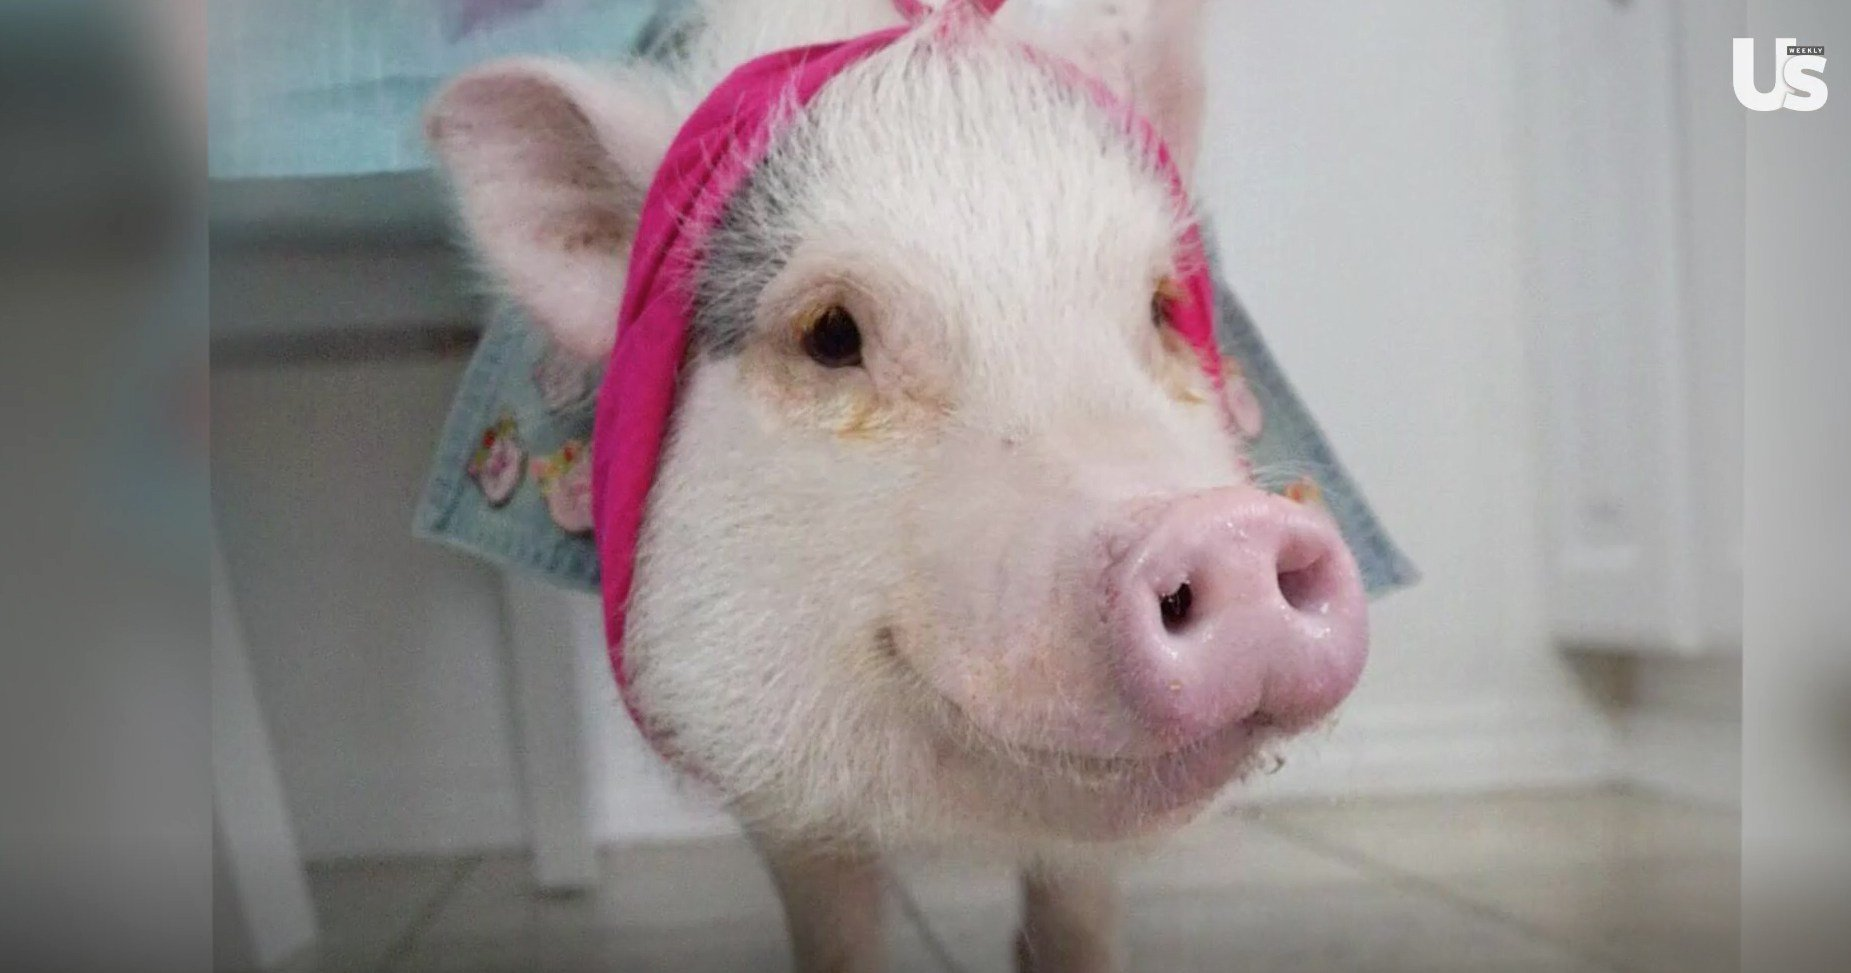 Meet Hamlet the Piggy, a Pint-Sized Lifesaving Therapy Pet